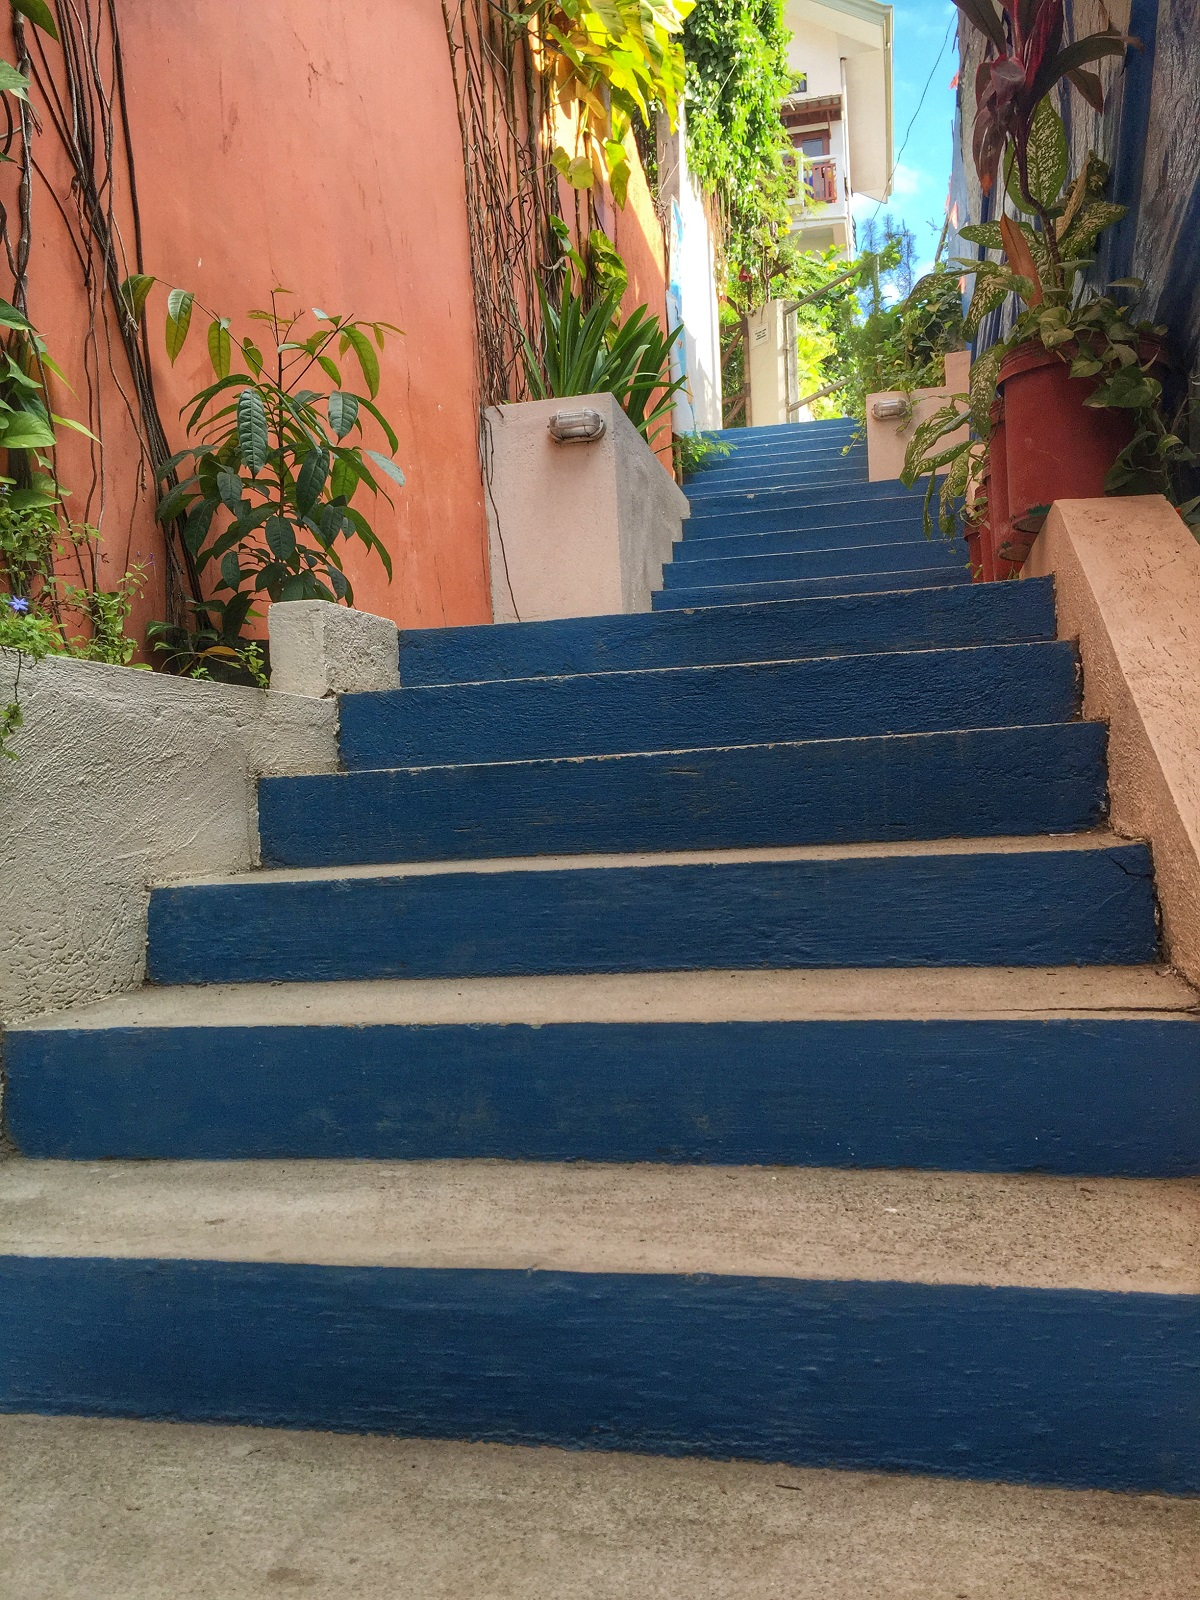 stairs at Agos Rooms + Beds in Boracay